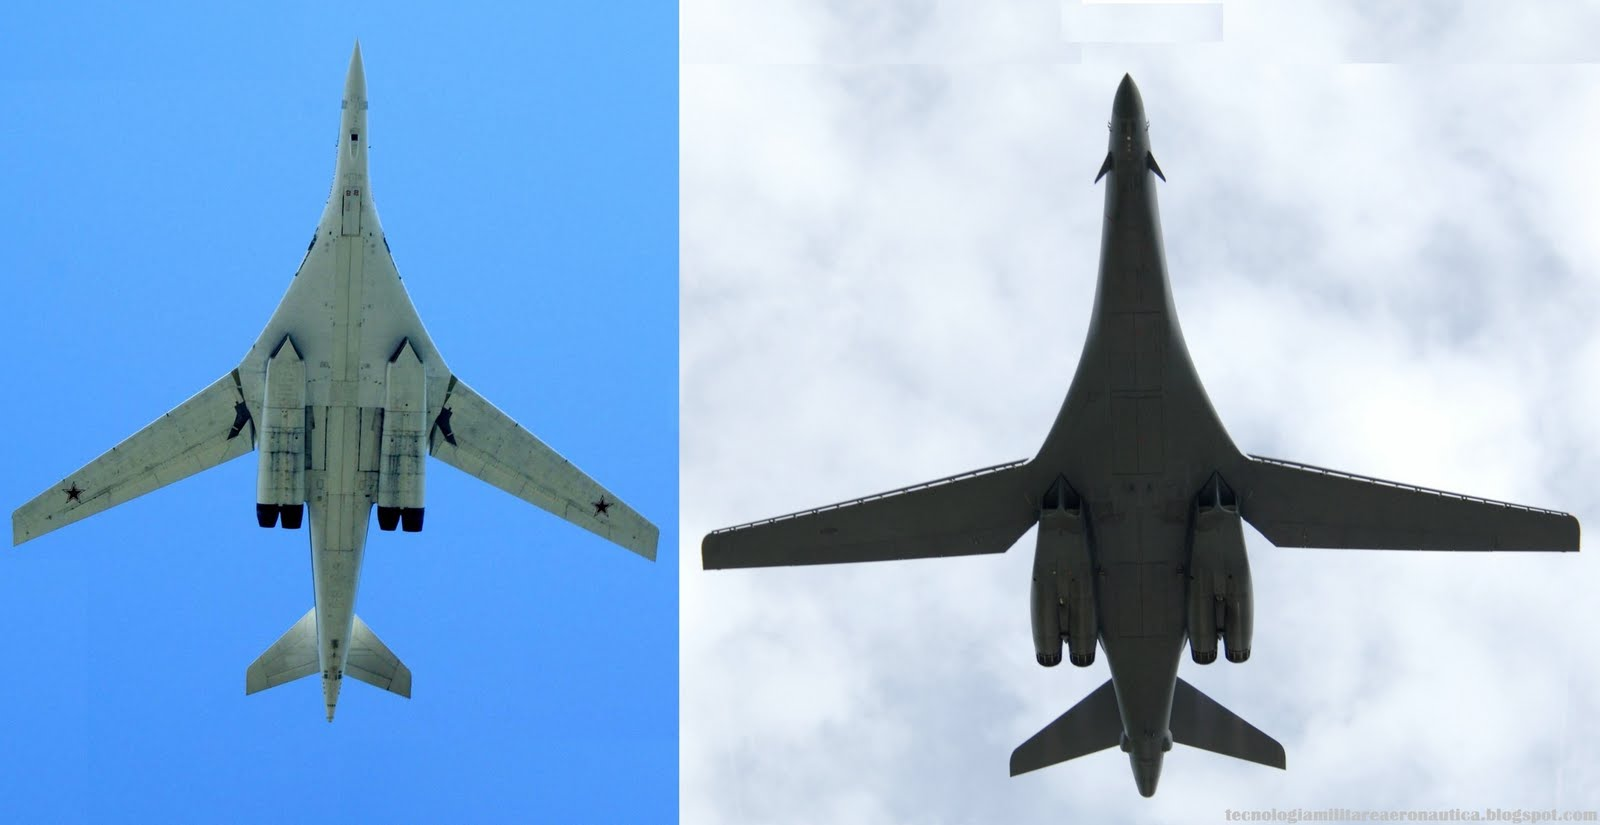 Tu-160 blackjack vs b1b lancer - Texas holdem poker king live B1 Lancer Vs Tu 160